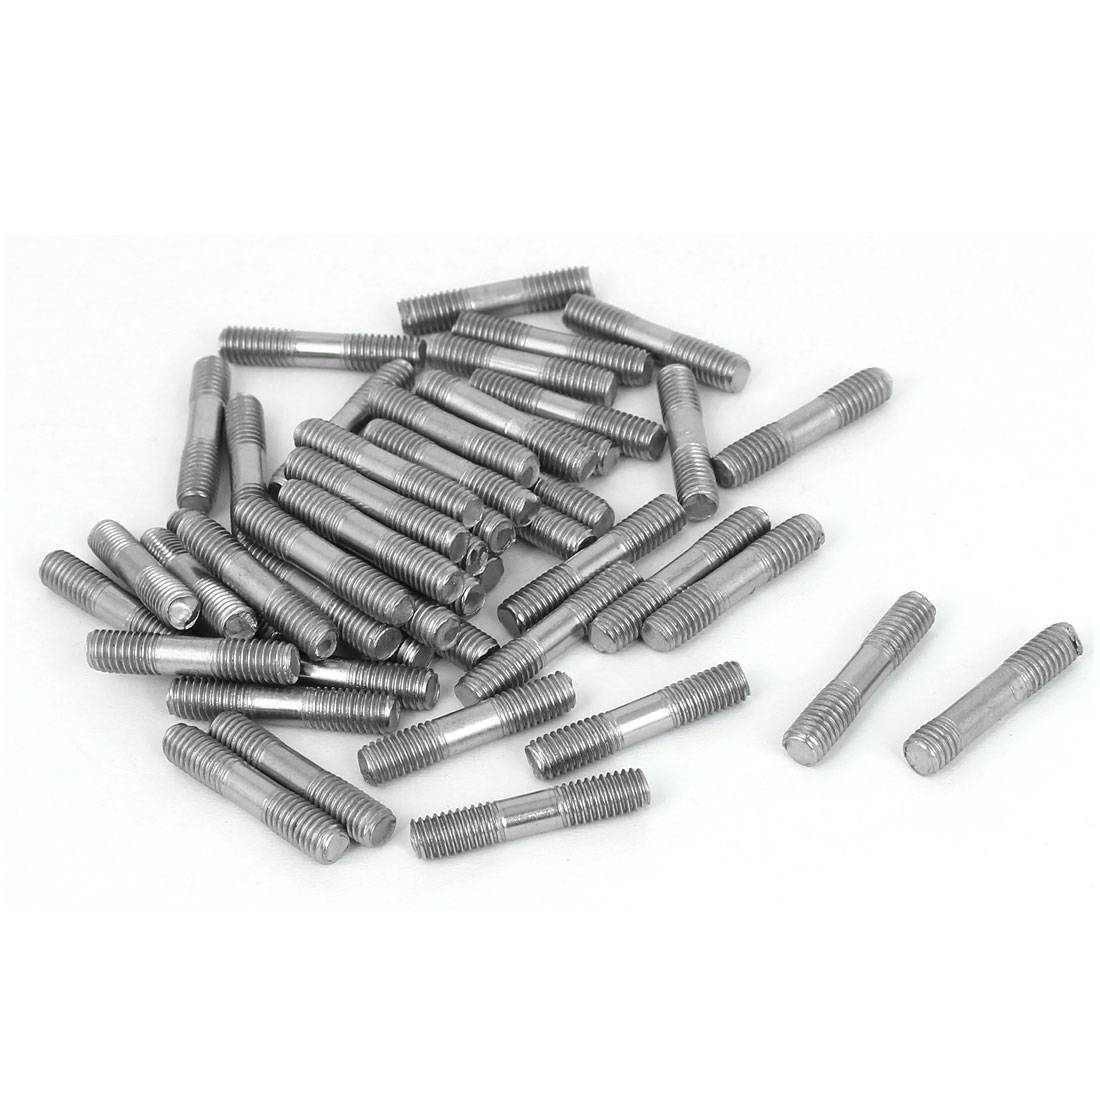 M5x25mm 304 Stainless Steel Double End Thread Tight Adjustable Push Rod Stud 50pcs